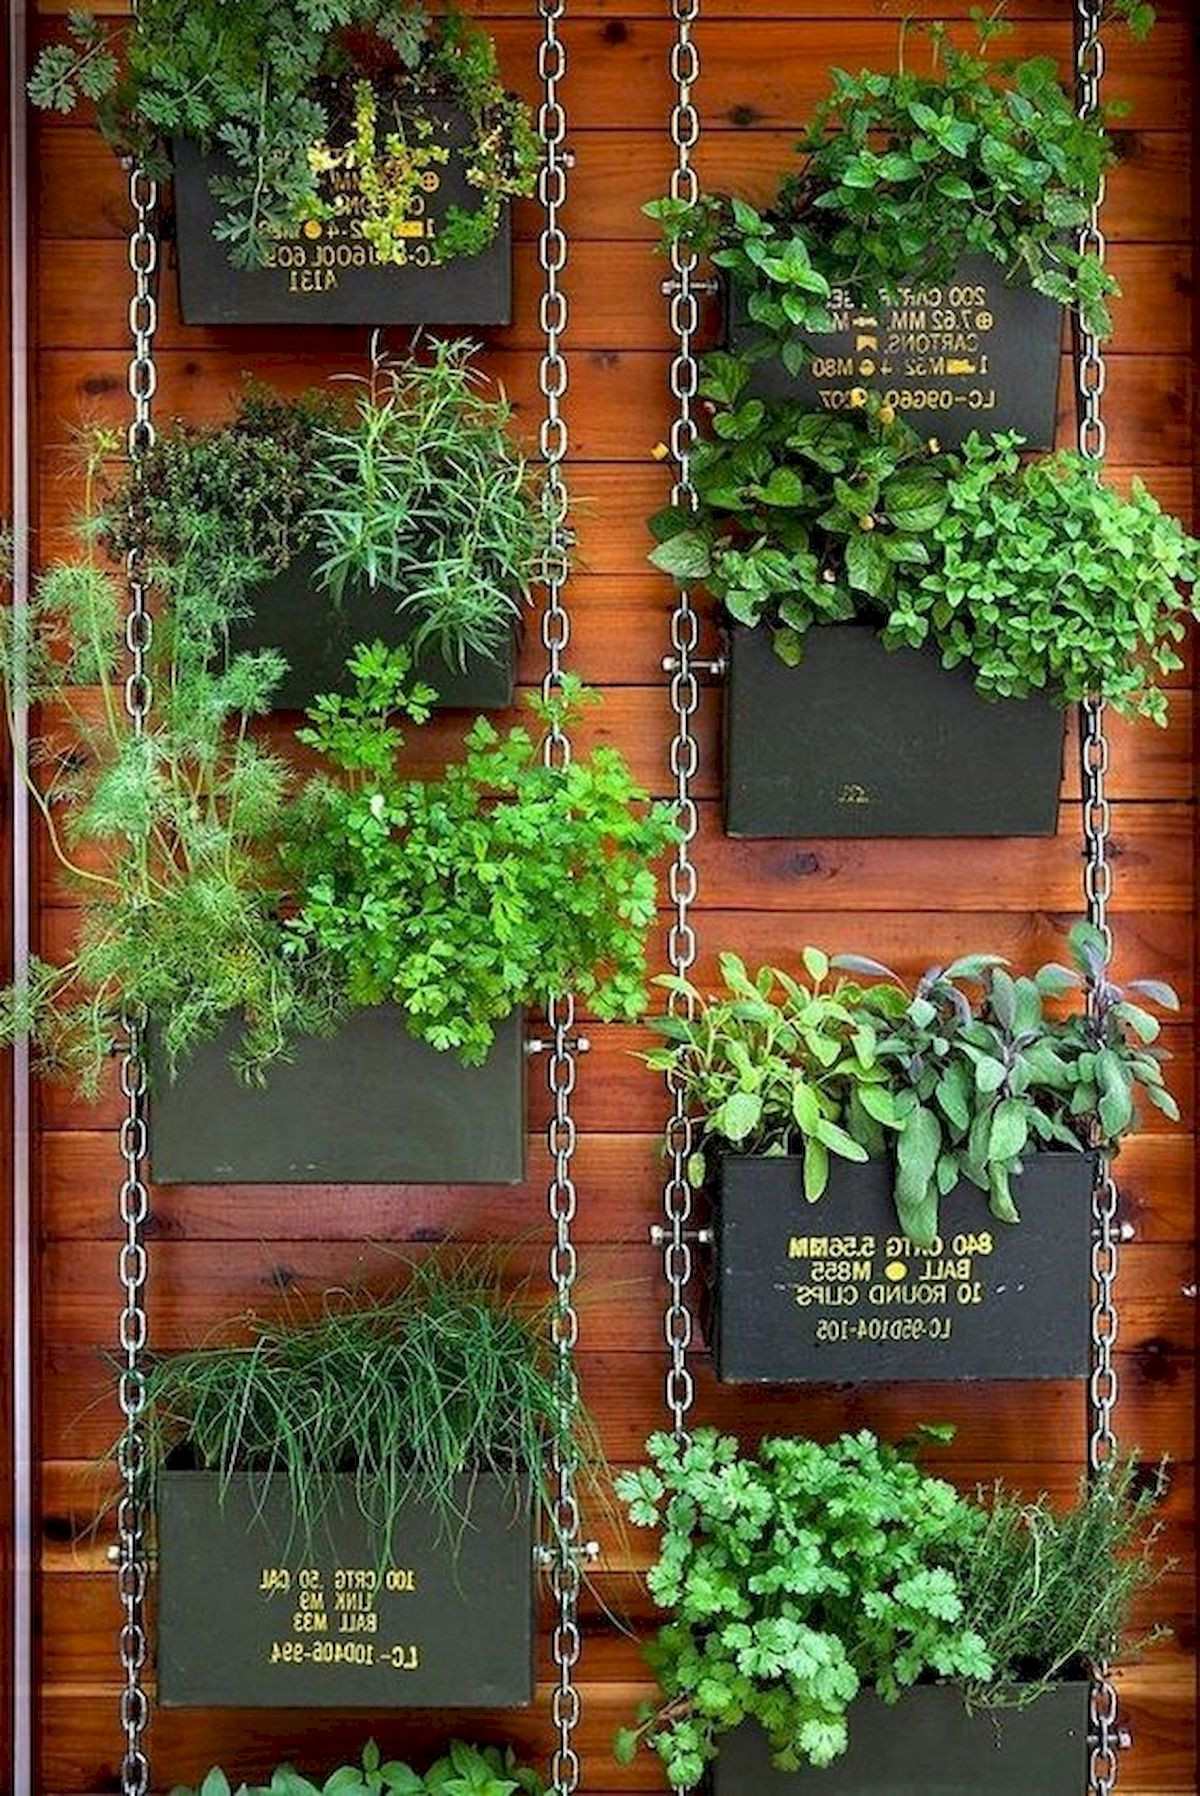 50 Awesome Modern Backyard Garden Design Ideas With Hanging Plants (31)